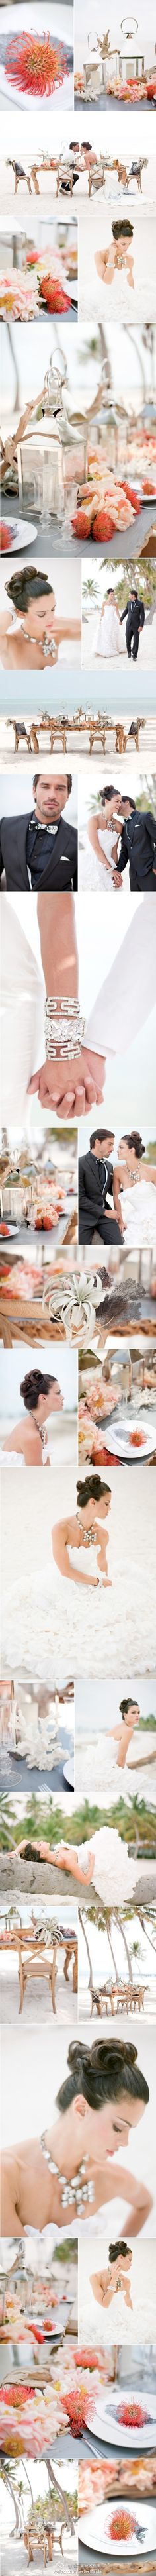 best flowers images on pinterest floral arrangements florals